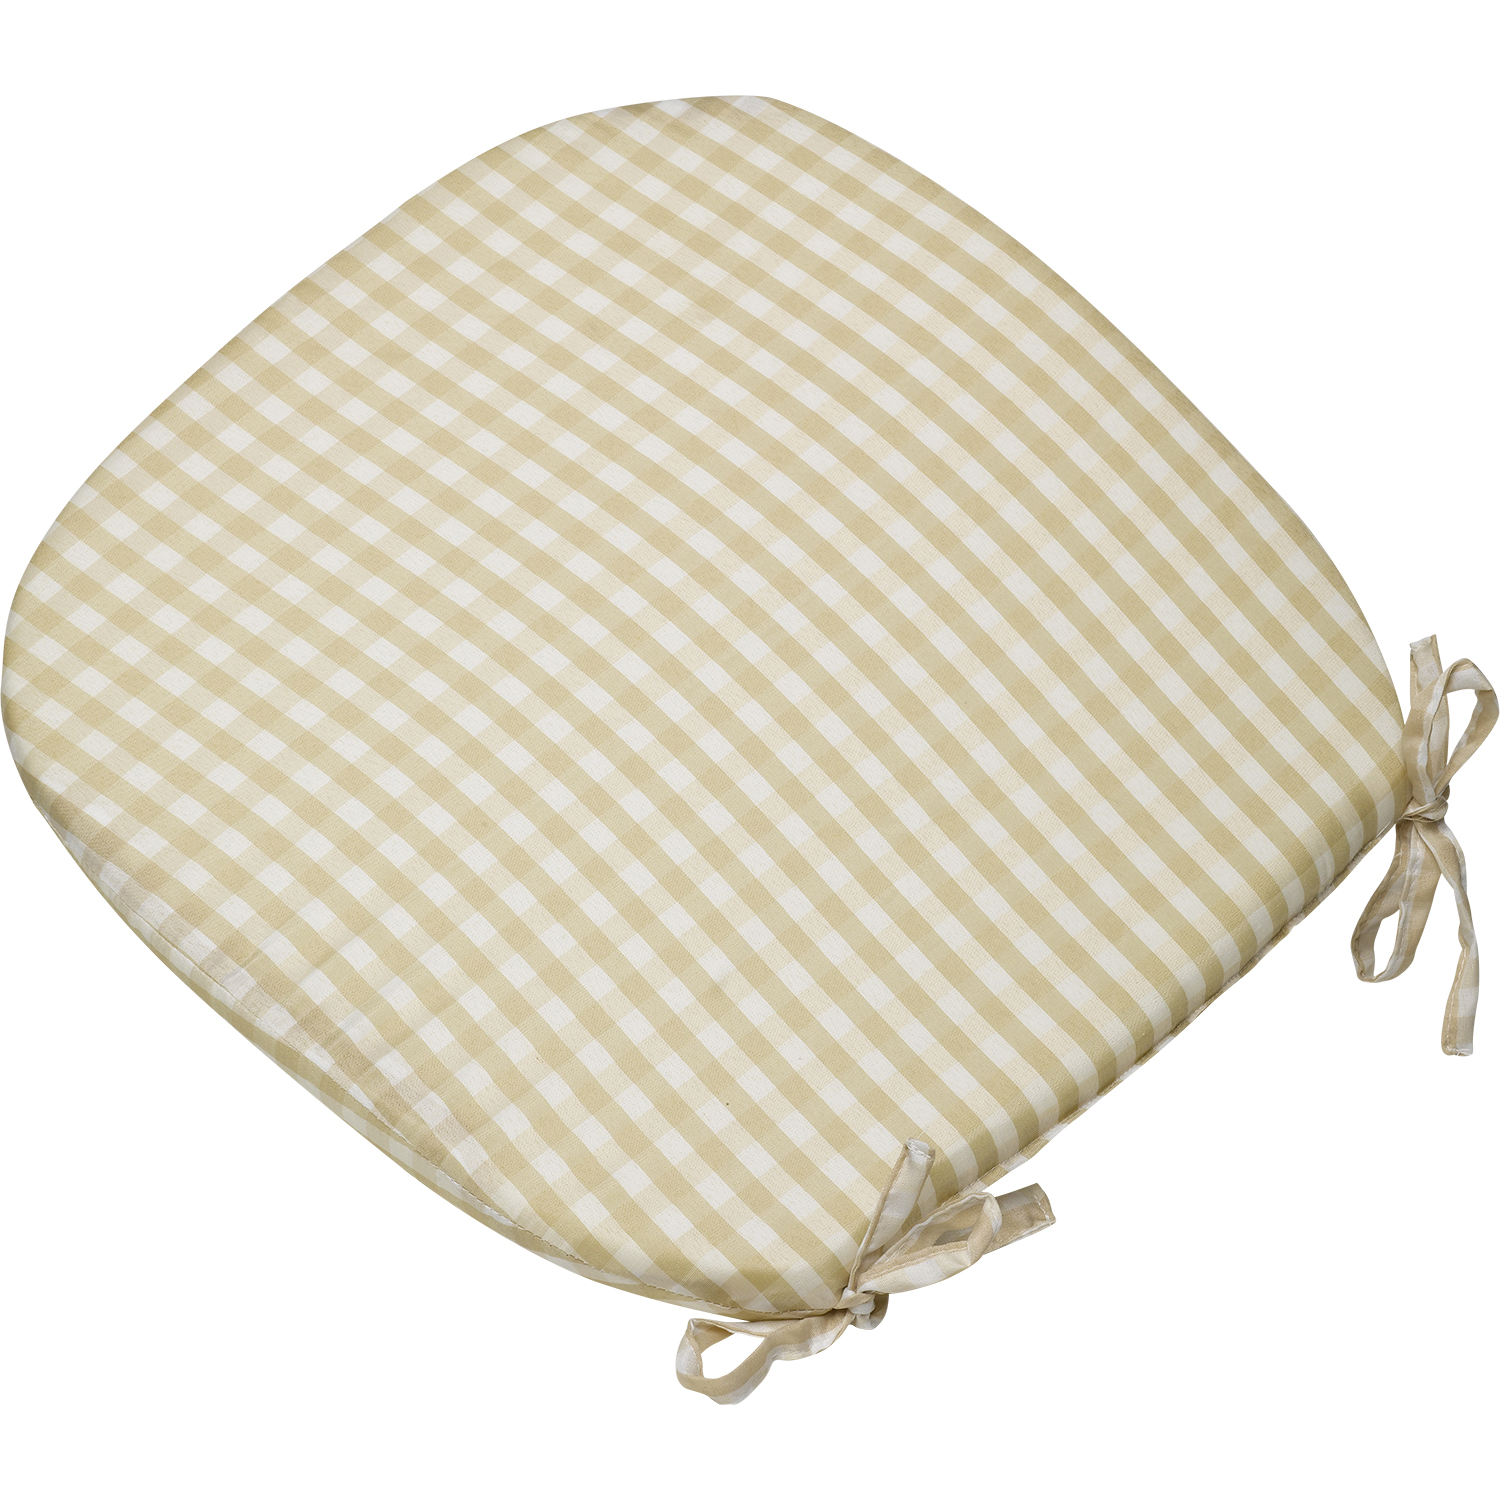 Gingham Check Tie On Seat Pad 16 x 16 Kitchen Outdoor